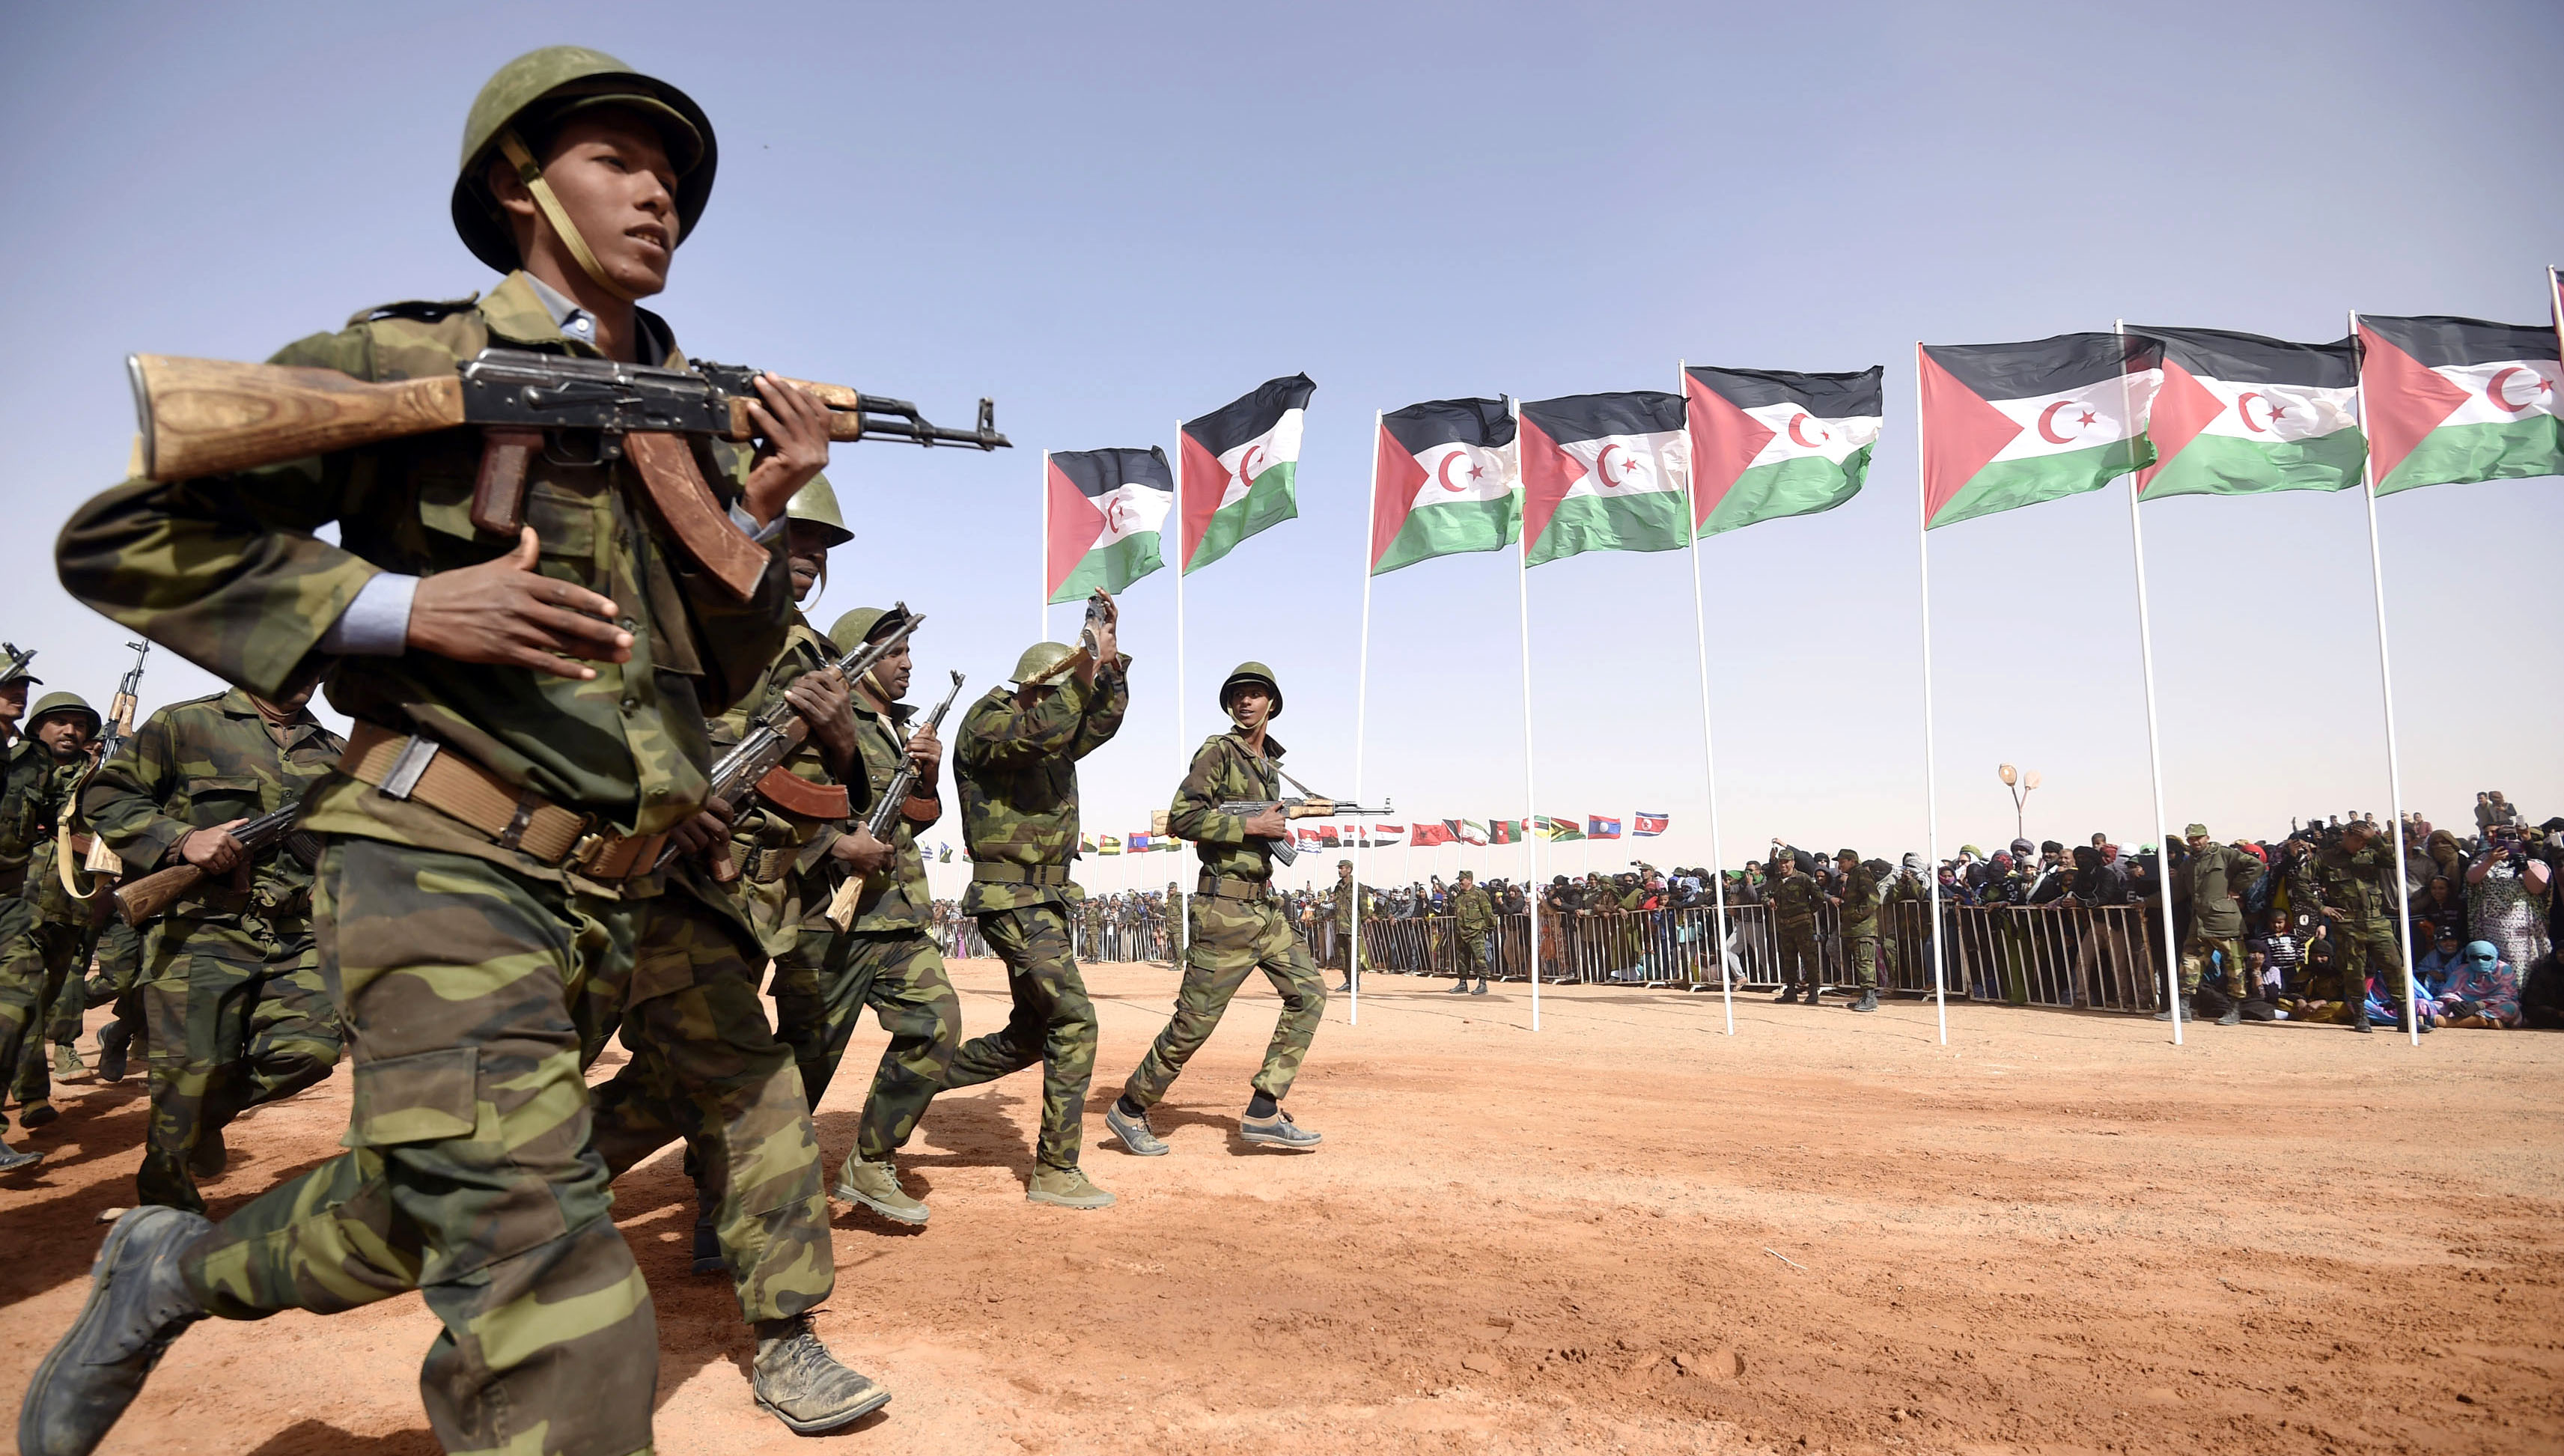 The hollow war drums of the Western Sahara conflict